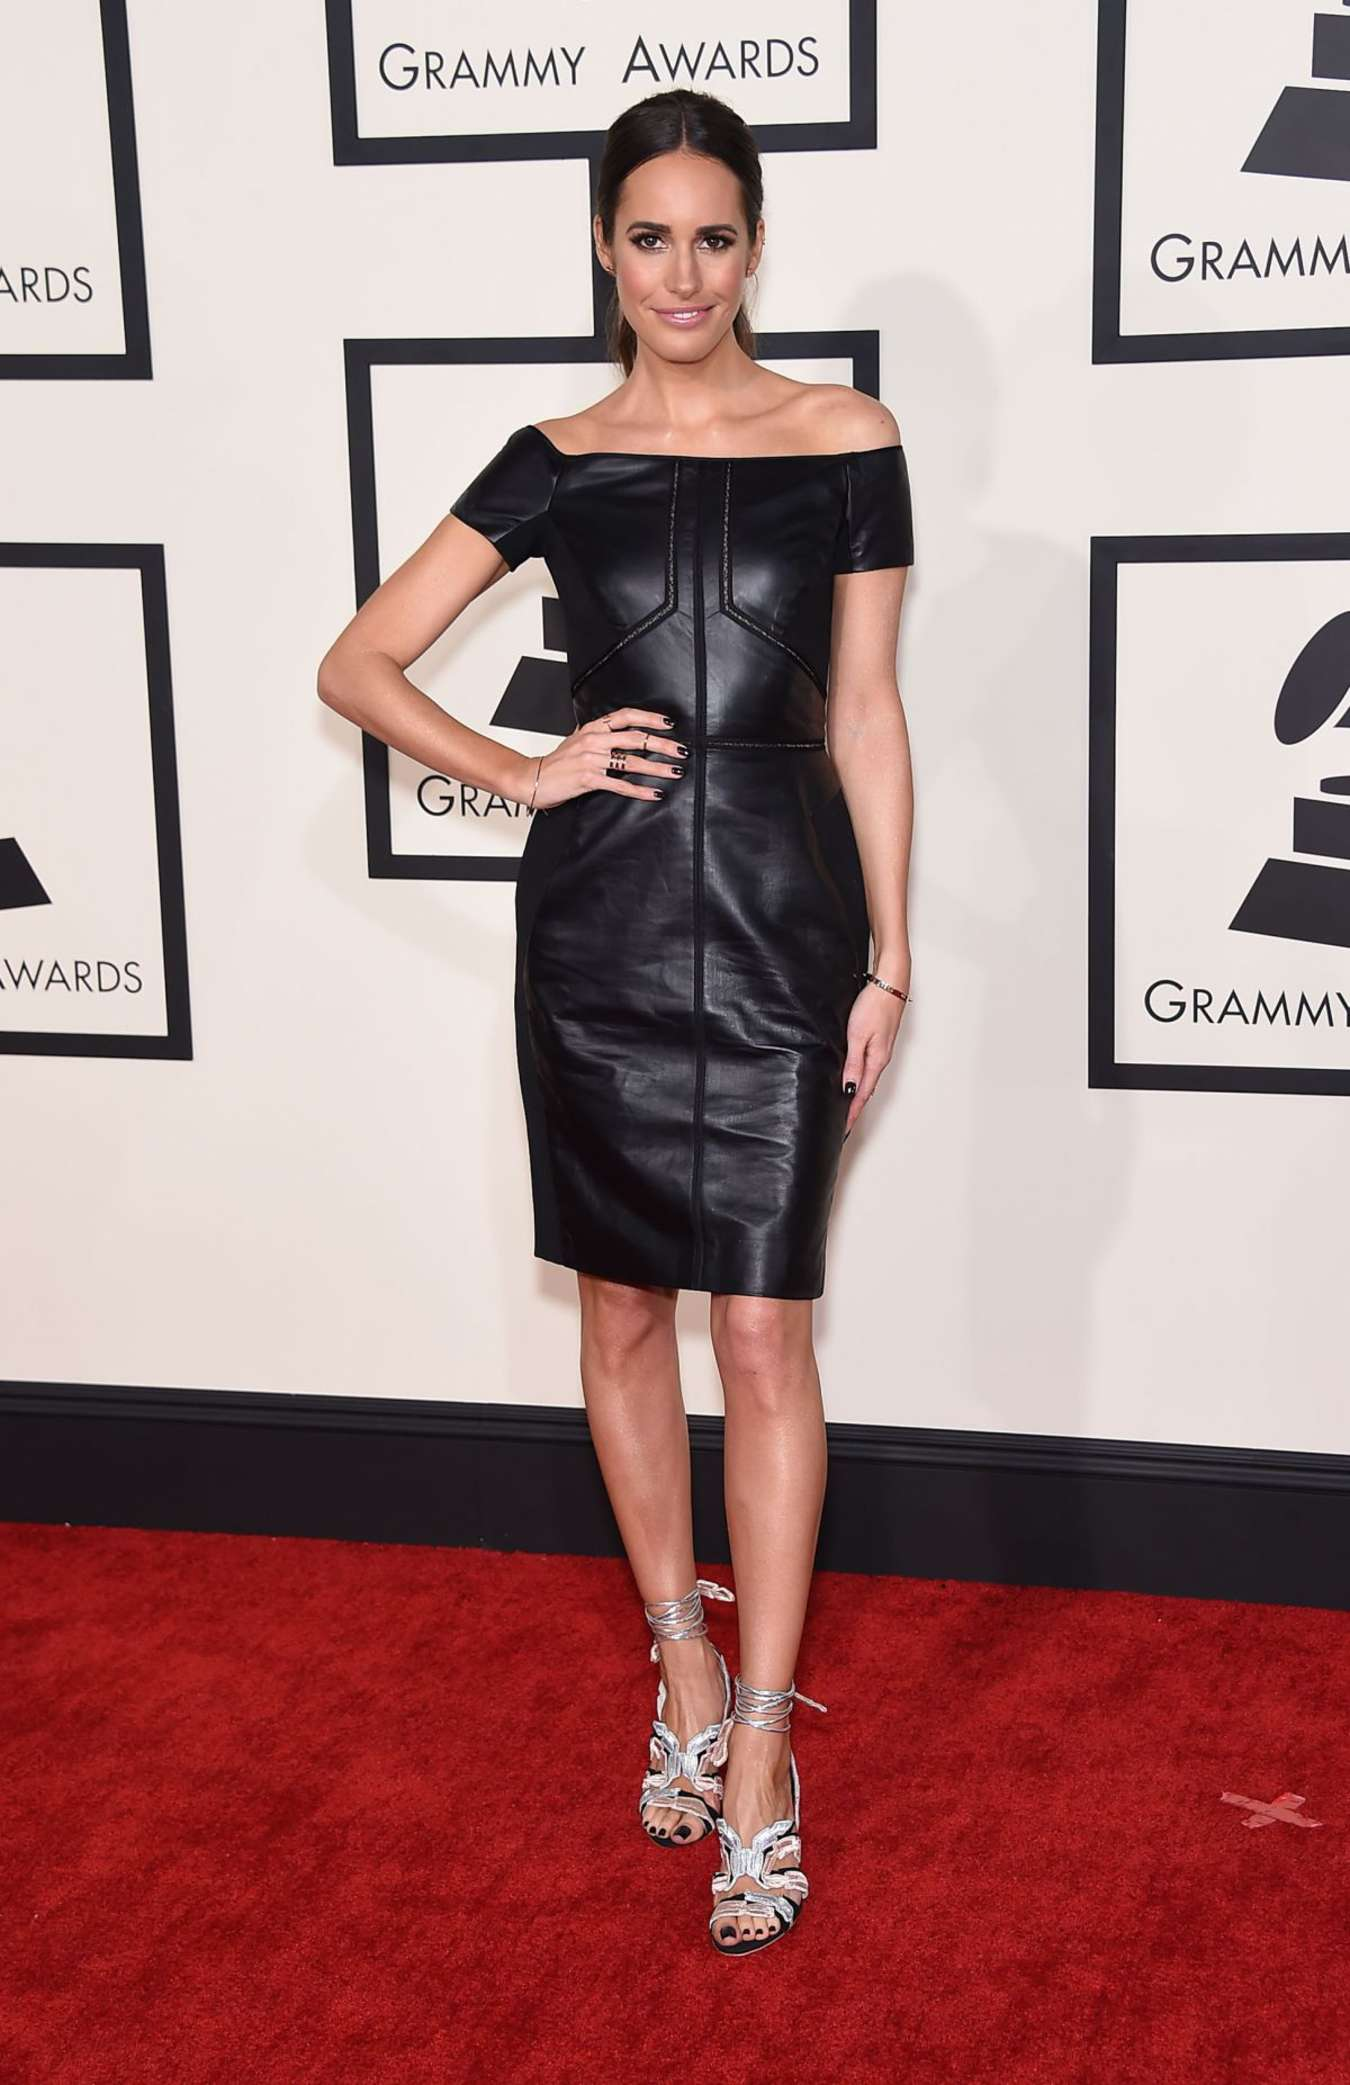 Louise Roe arrives at the 57th GRAMMY Awards